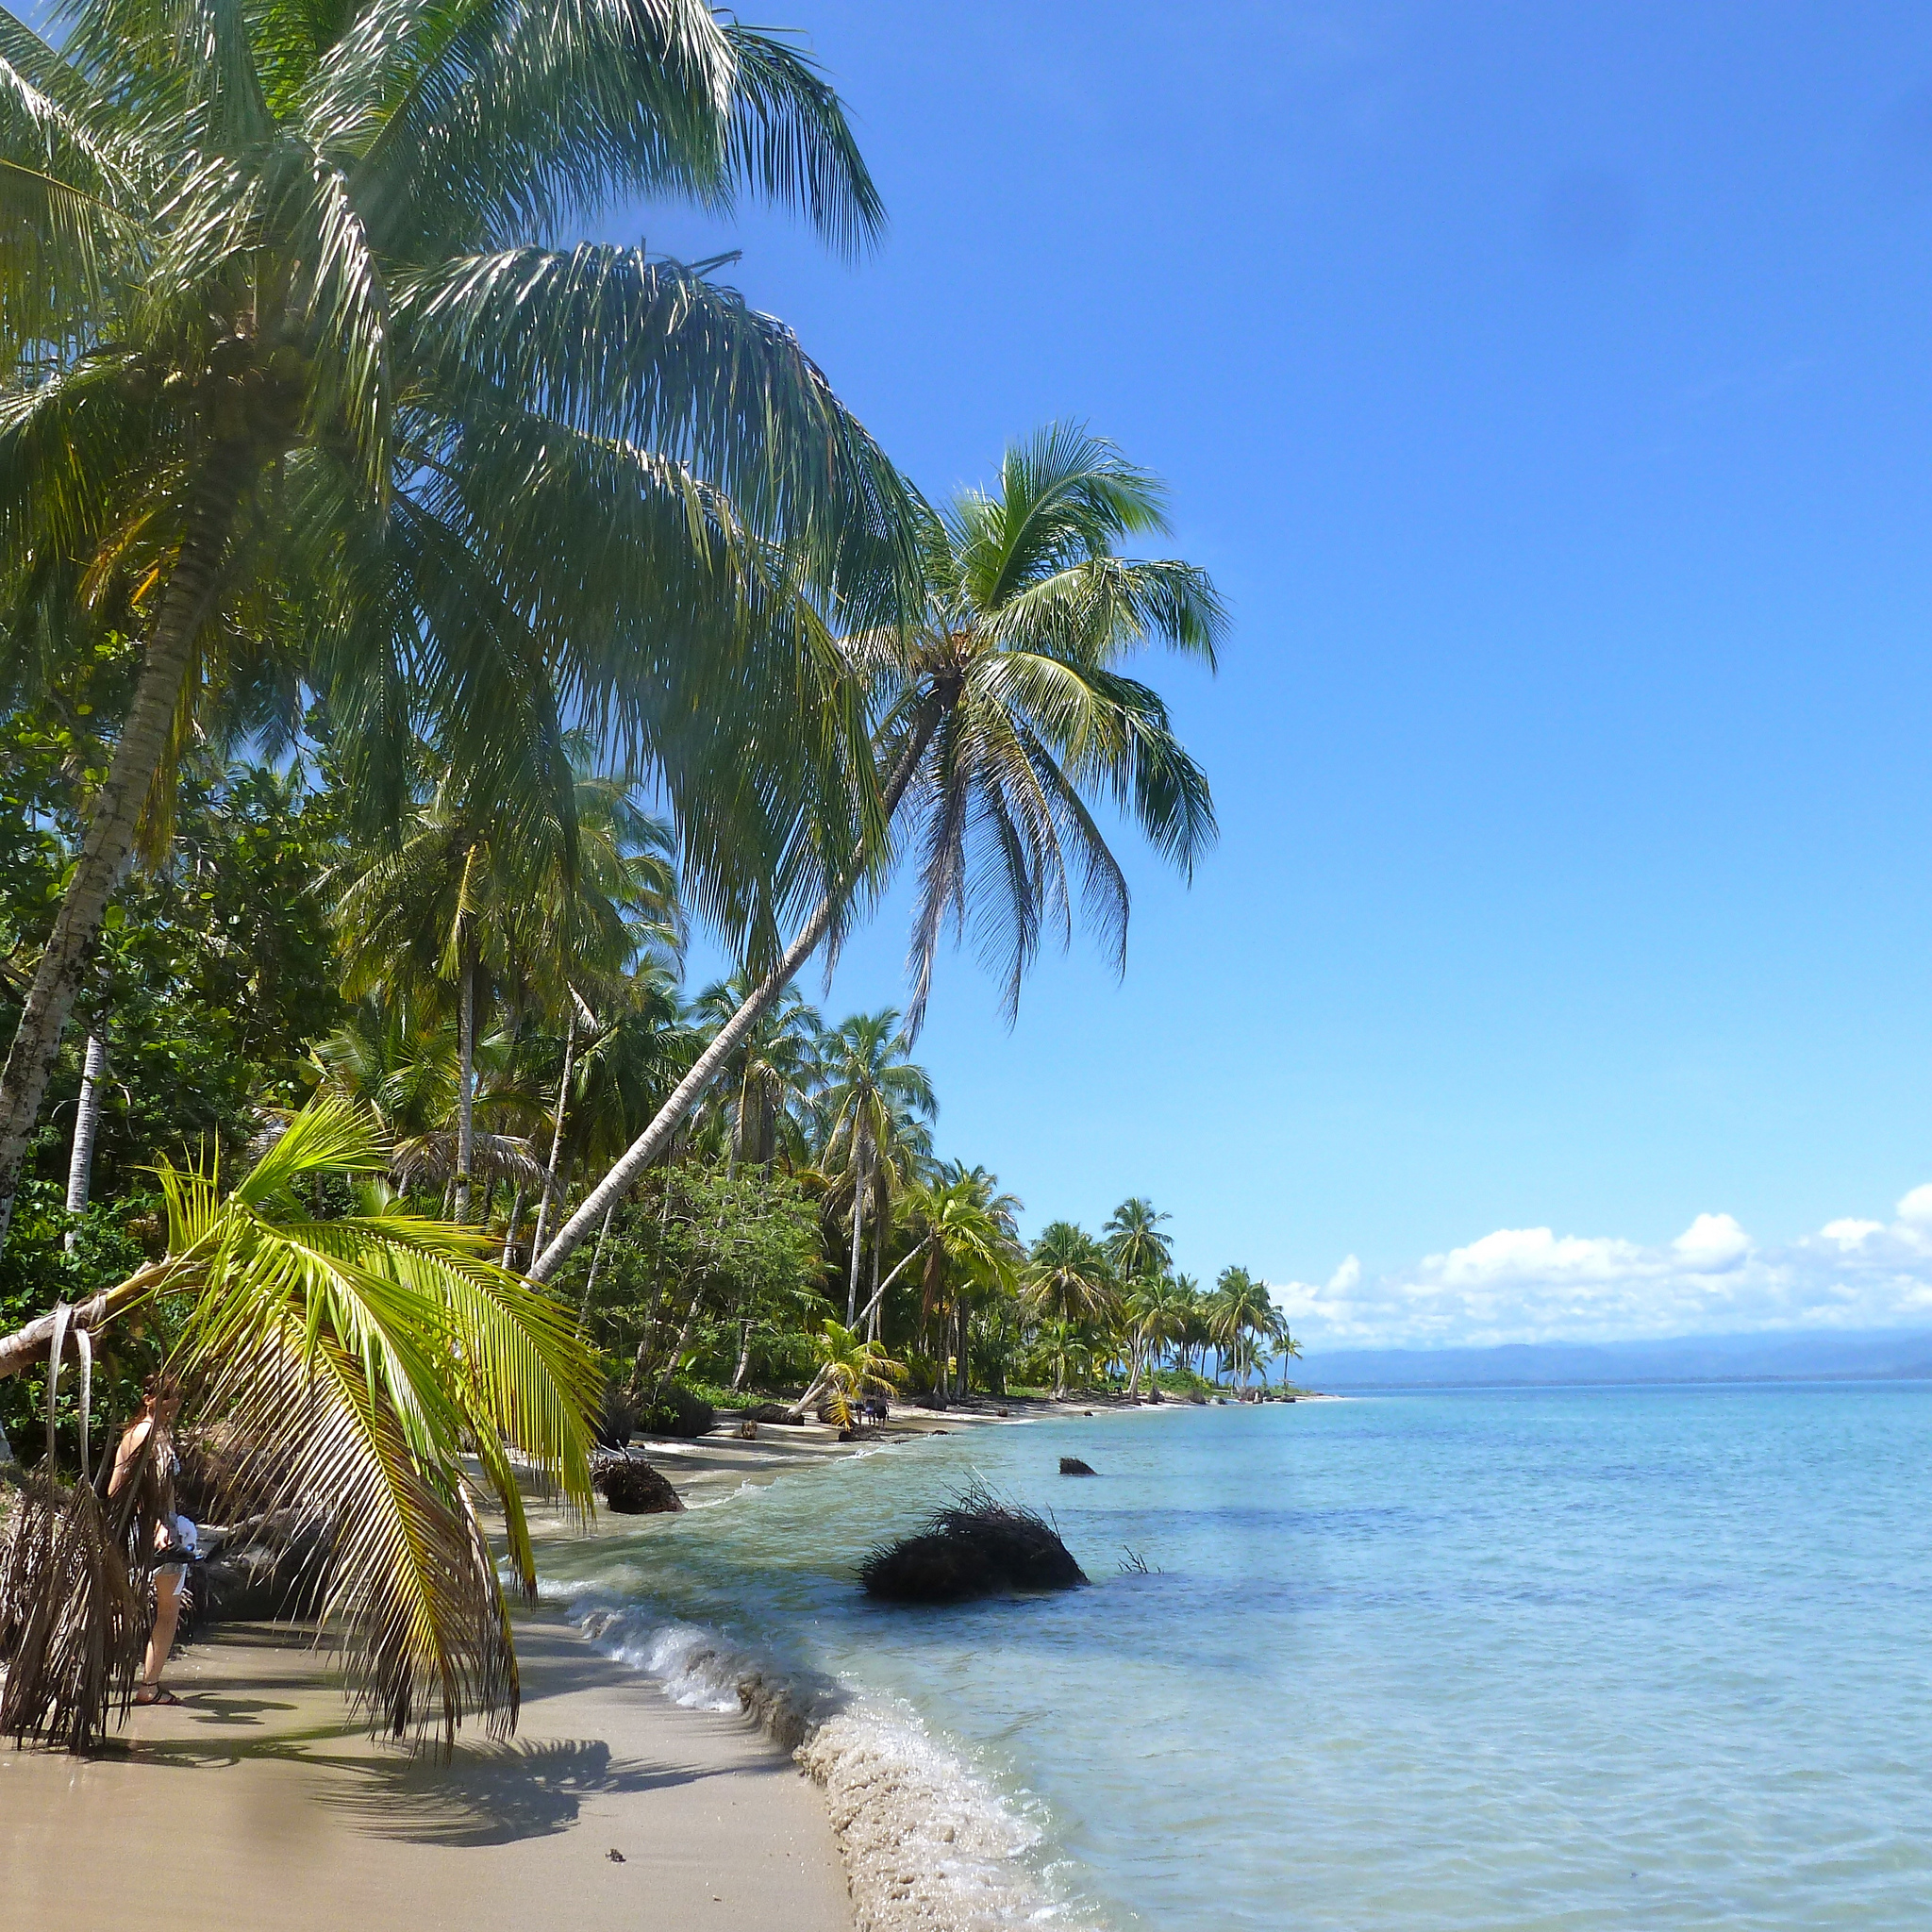 One of the things to know about visiting Bocas Del Toro: beaches like this are everywhere!